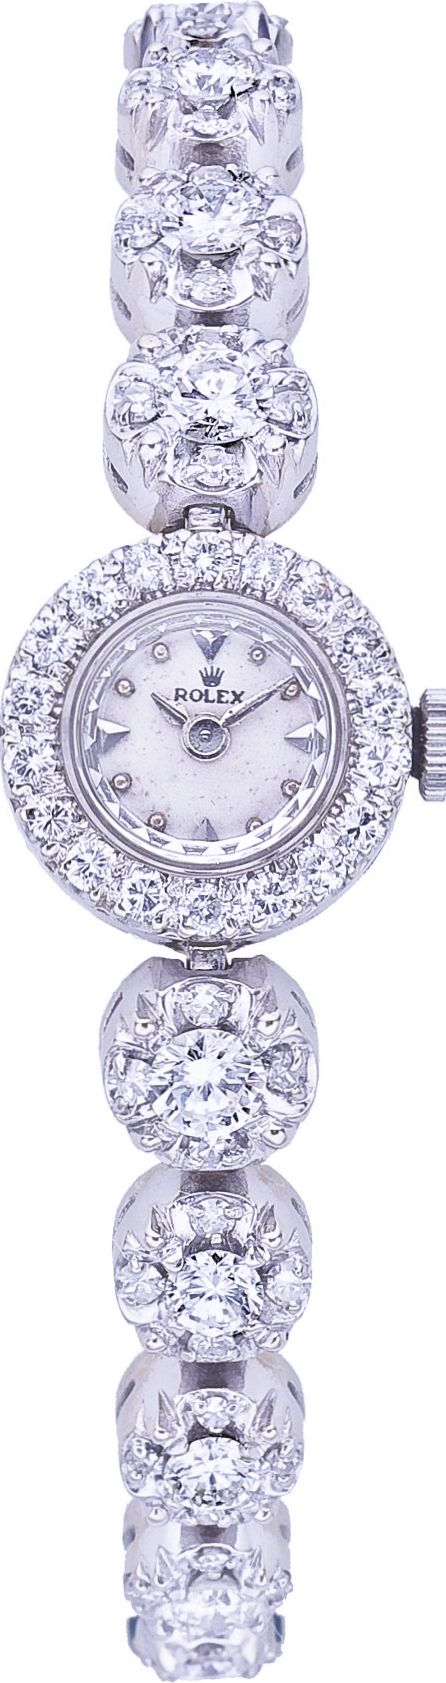 Woman's Diamond Rolex watch dream.This watch is amazing. #diamonds #bling www.fi...